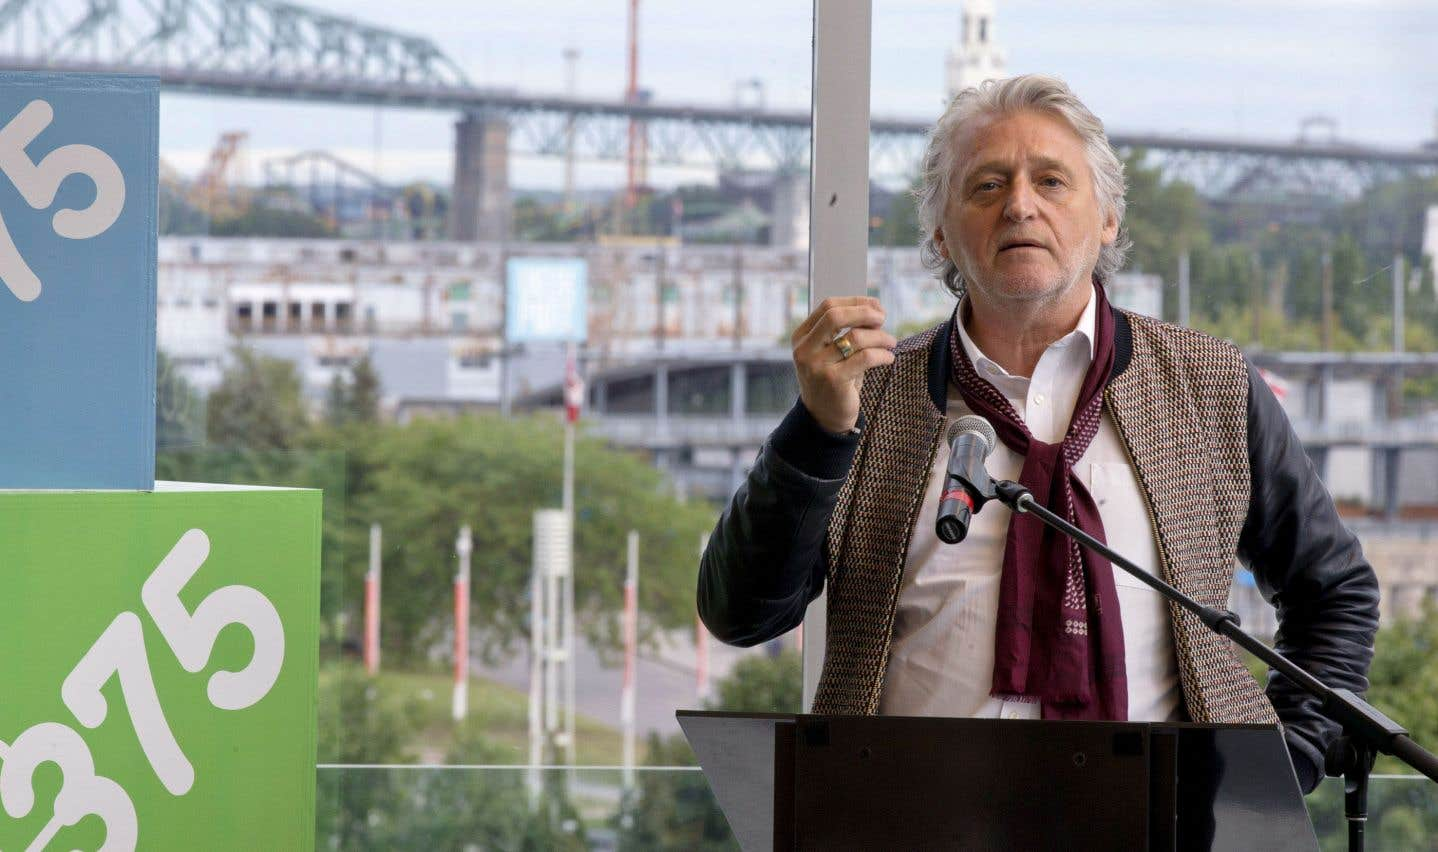 Allégations d'inconduite sexuelle: la chute de Gilbert Rozon secoue Paris